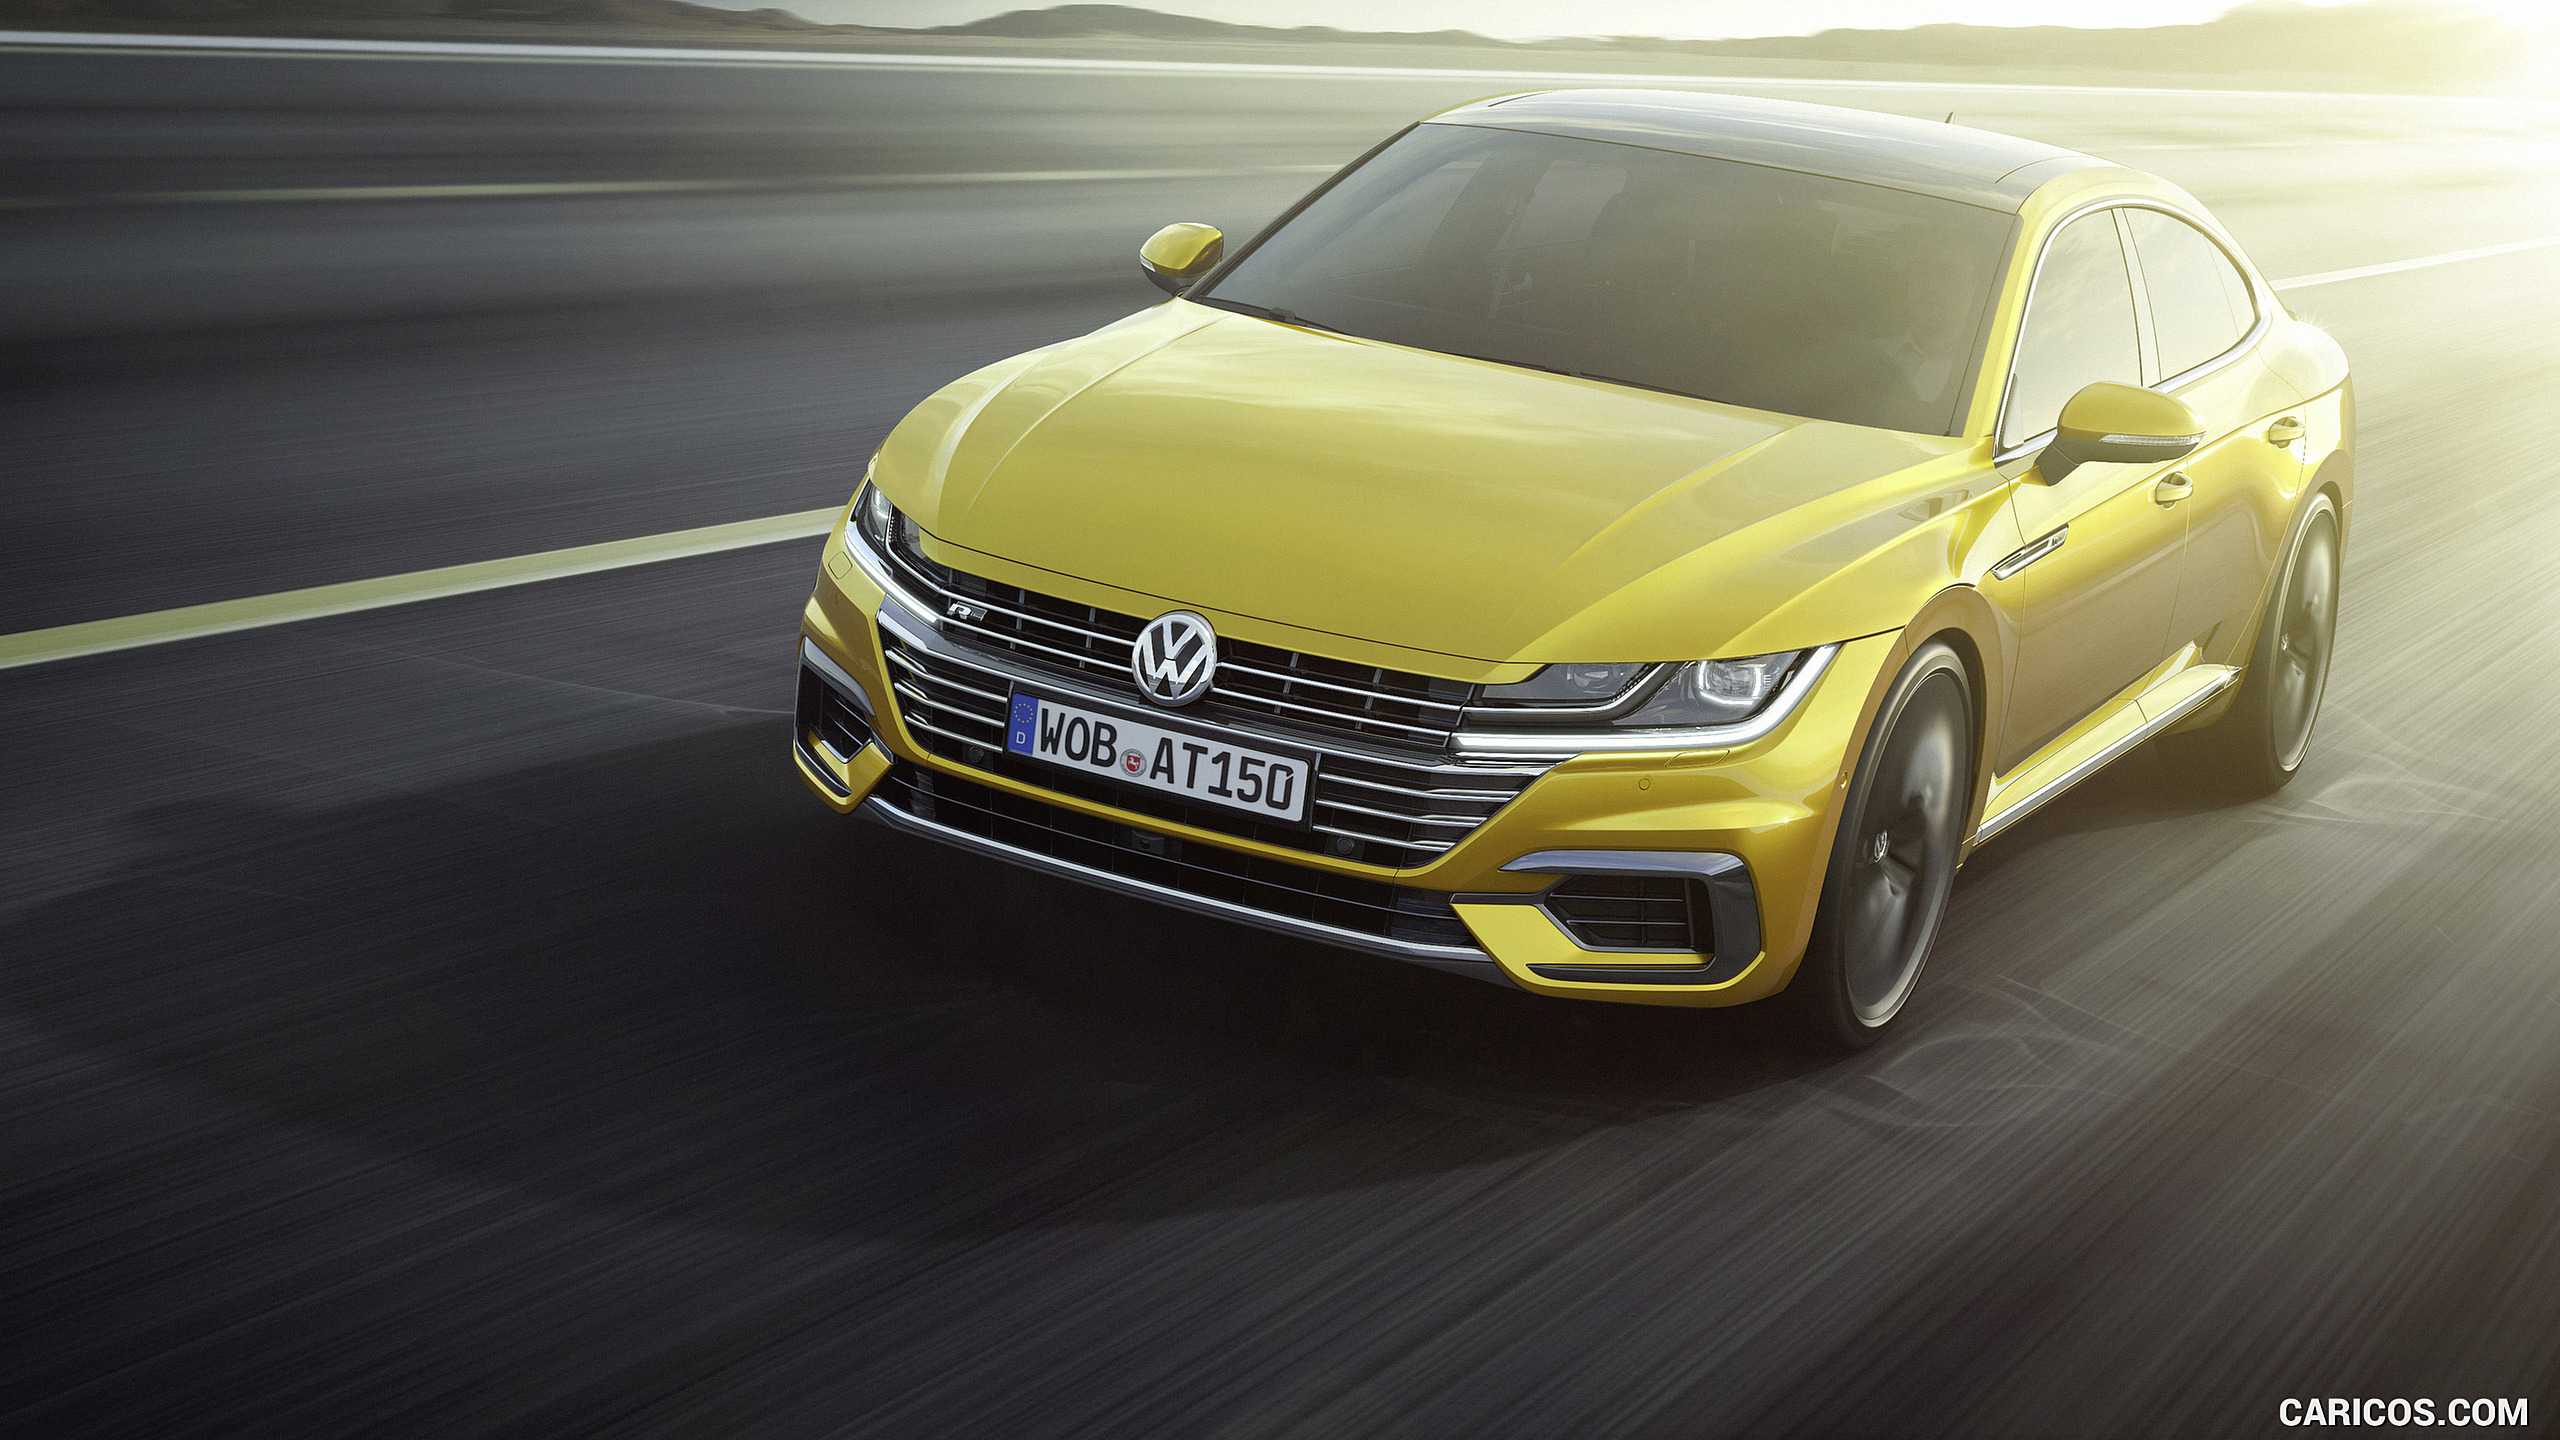 2560x1440 - Volkswagen Arteon Wallpapers 33